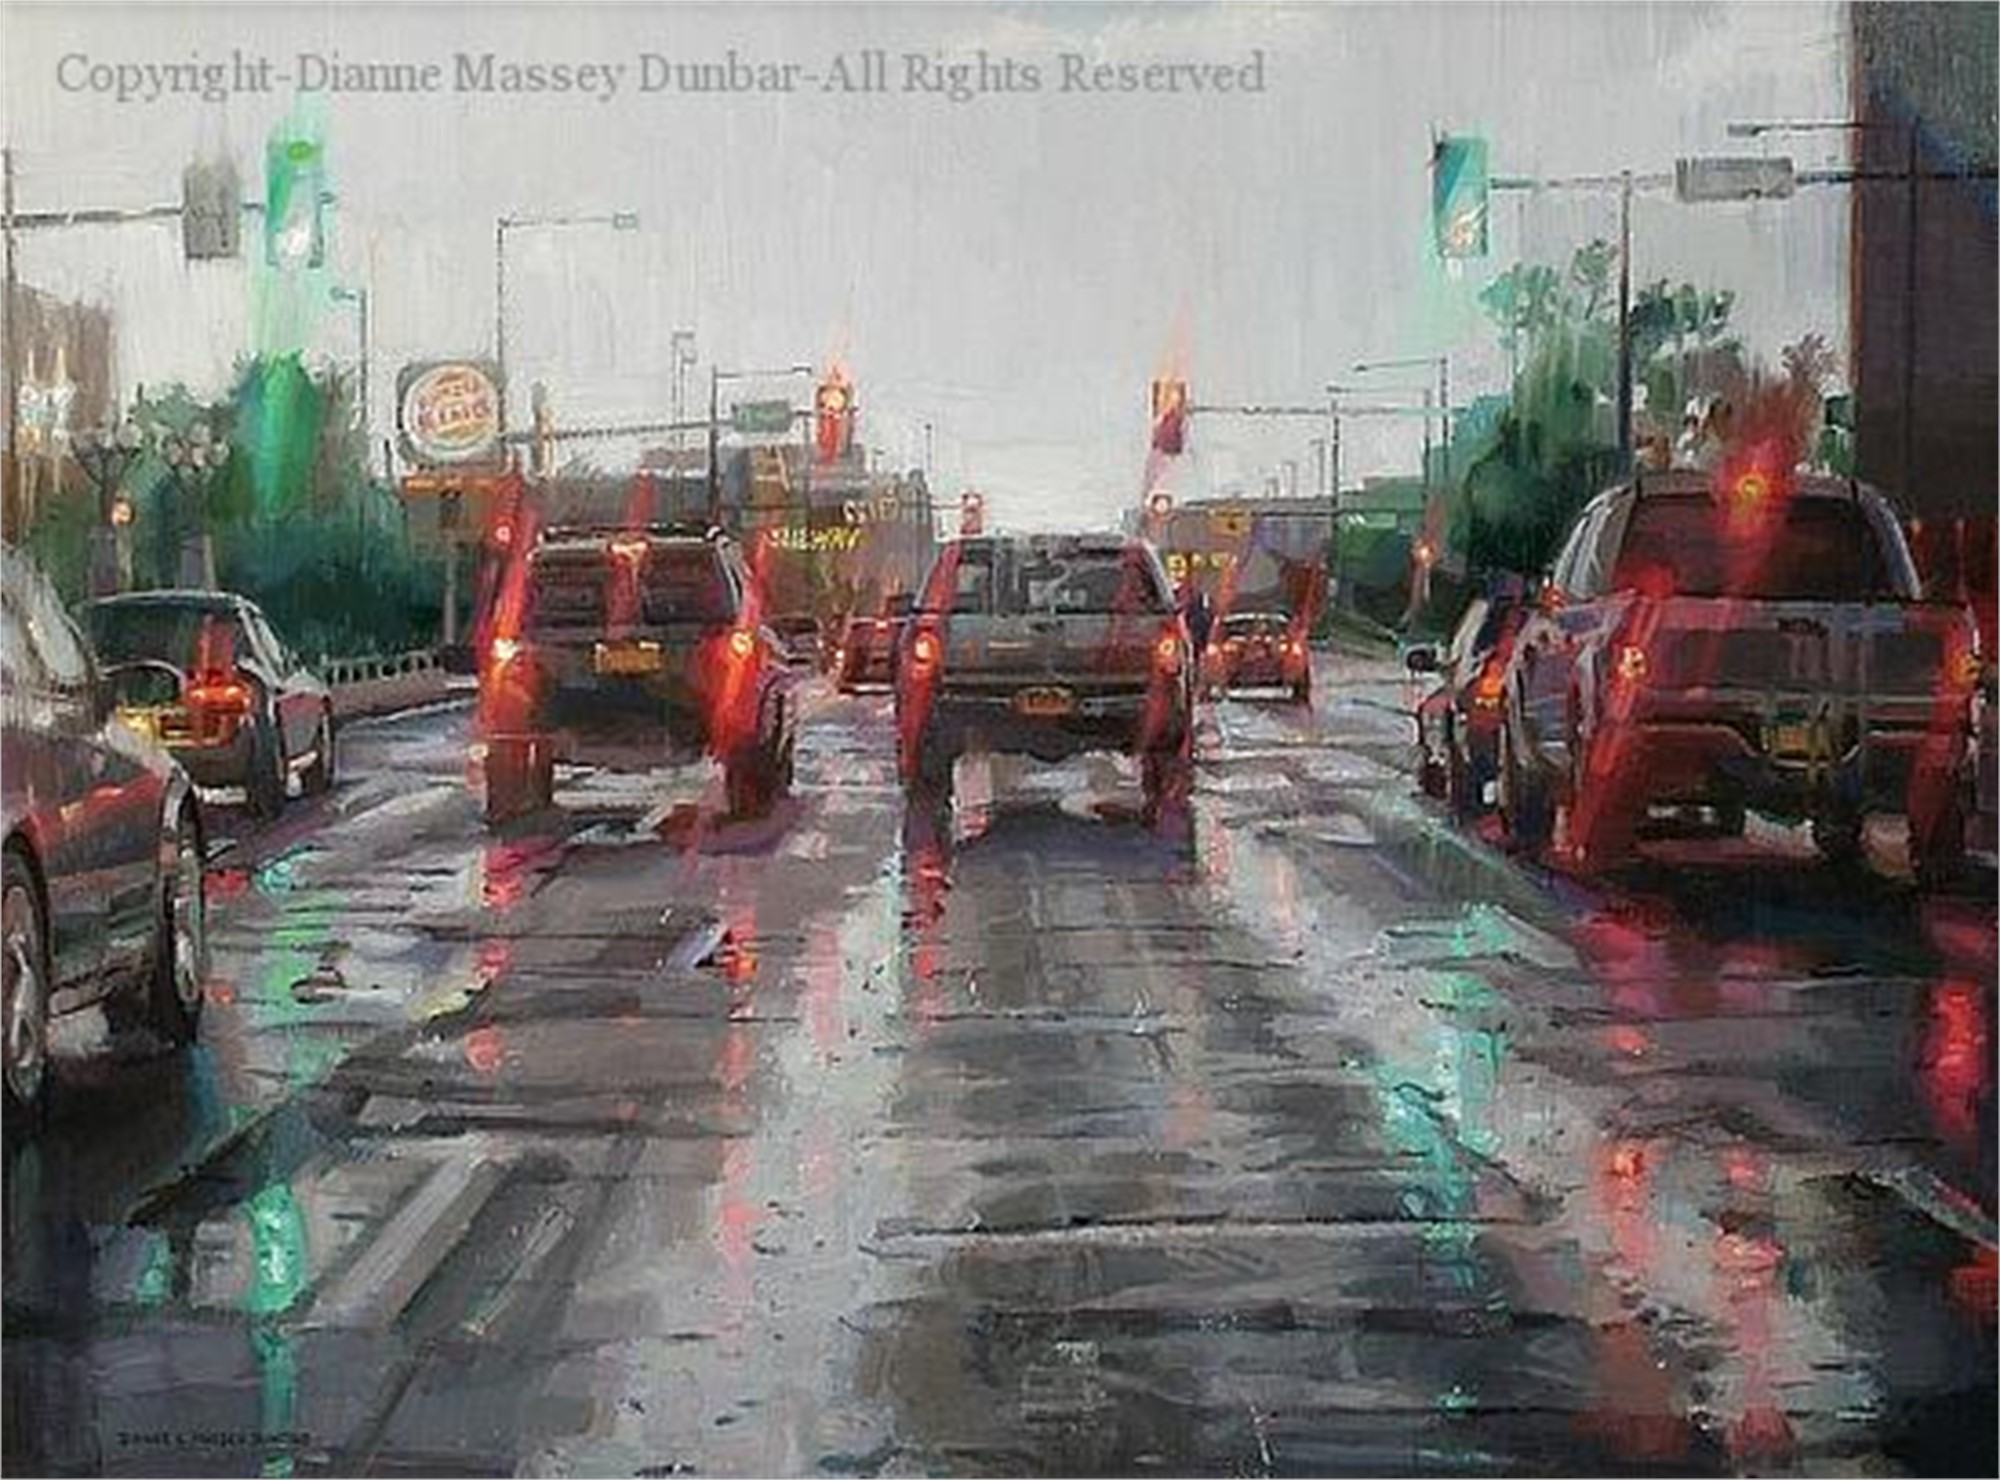 Driving in the Rain by Dianne L Massey Dunbar